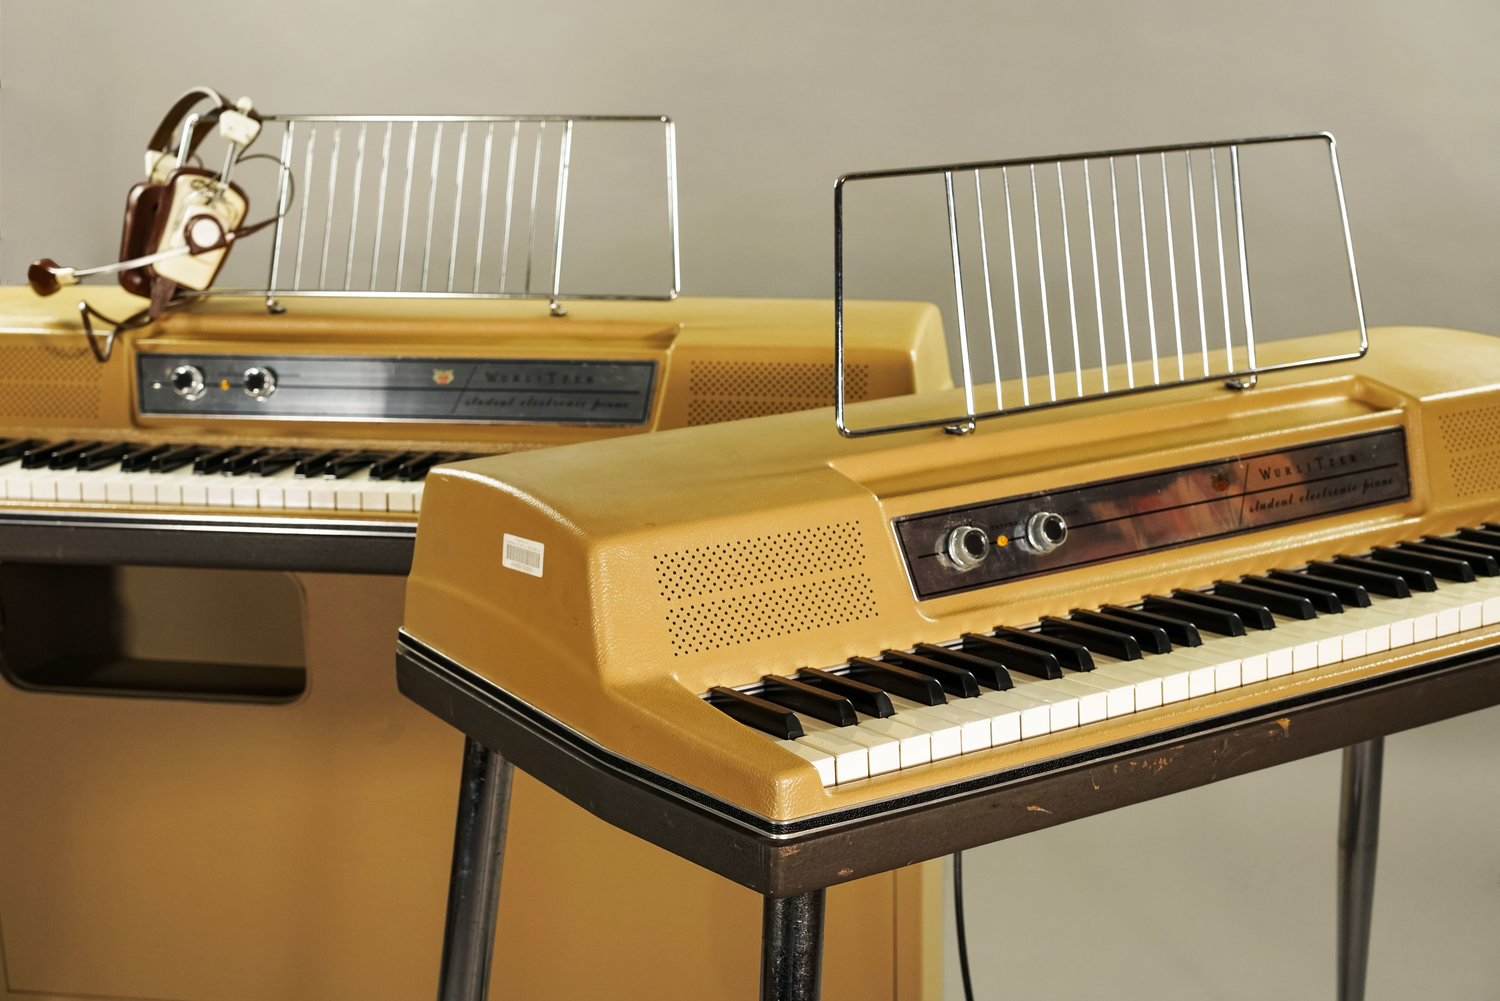 Differences Between a Wurlitzer 140 and 200